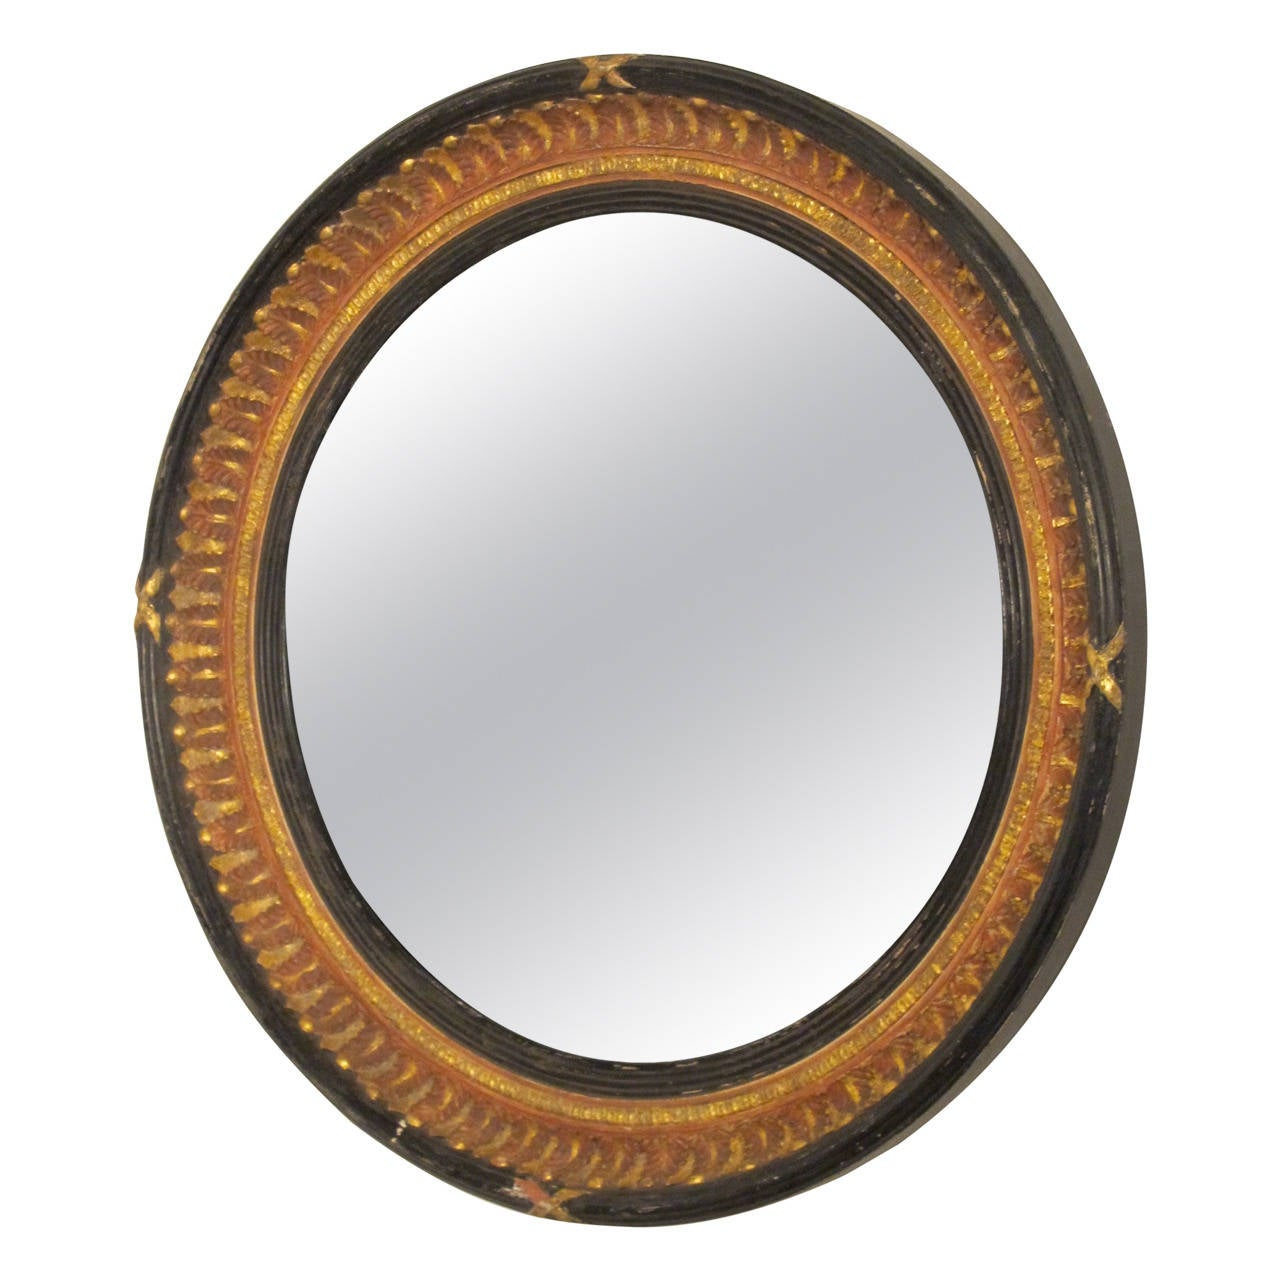 Unusual english convex mirror for sale at 1stdibs for Convex mirror for home